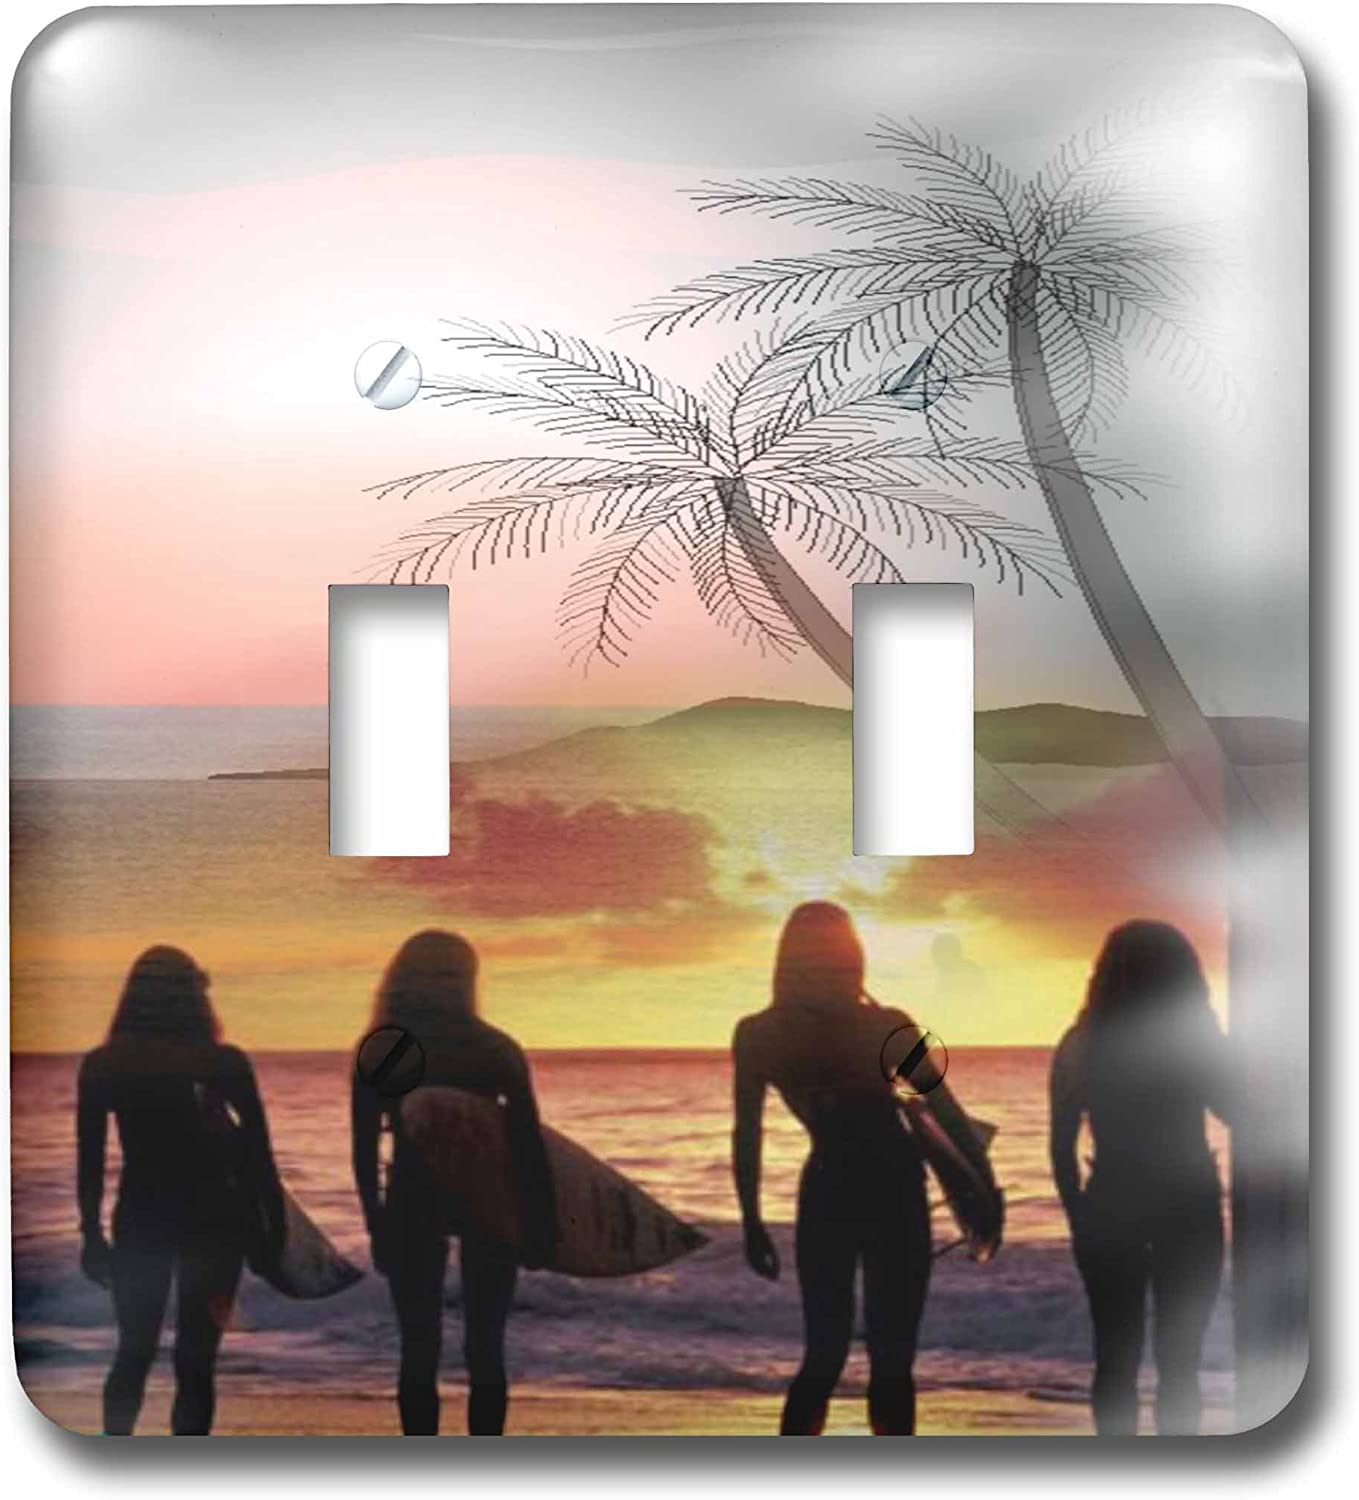 3drose Lsp 61471 2 Surfer Girls Beautiful Sunset And Last Wave A Way To End The Day Double Toggle Switch Switch Plates Amazon Com